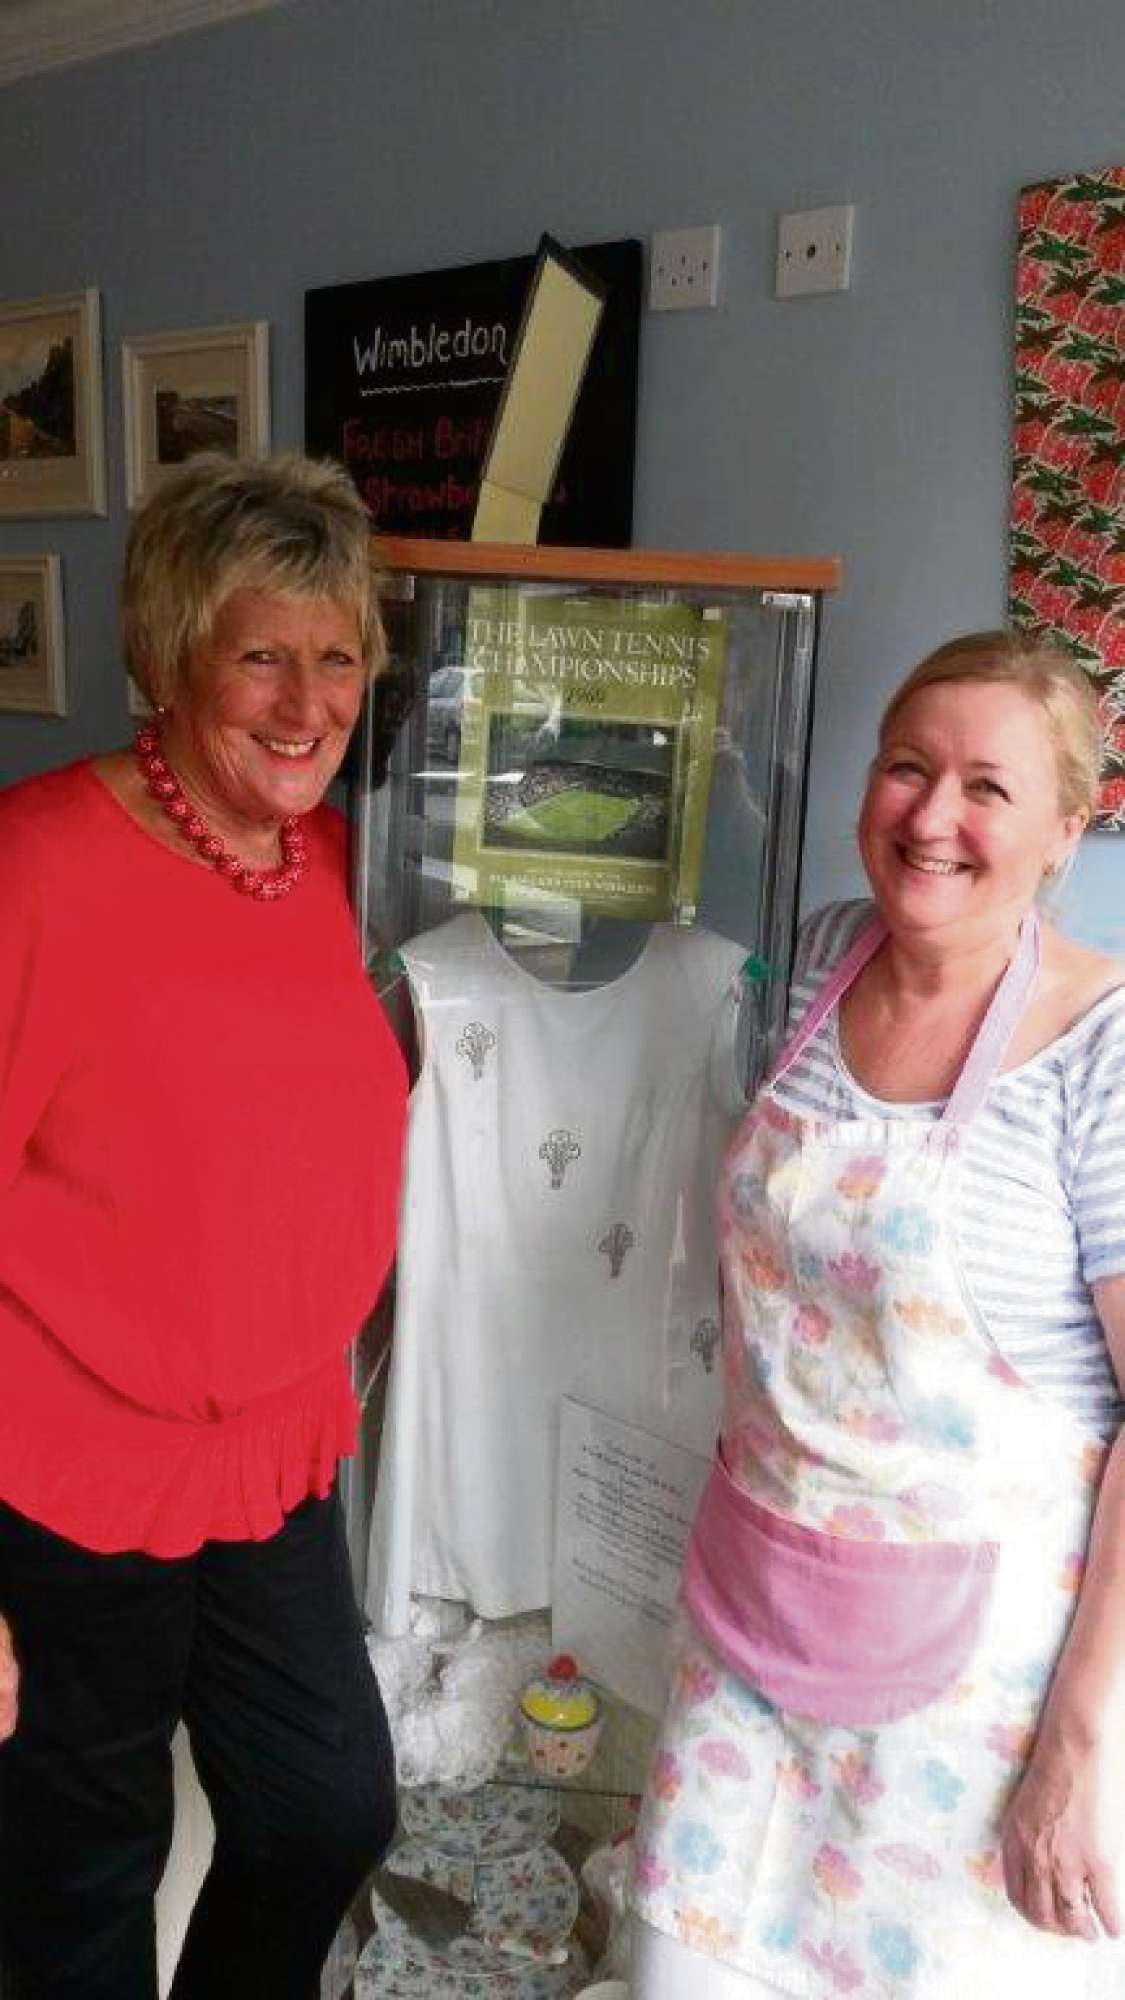 SMASH HIT: (right) Christine Teasdale, proprietor of the Victoria Tea Rooms, with former Wimbledon star Elizabeth James and her dress on display